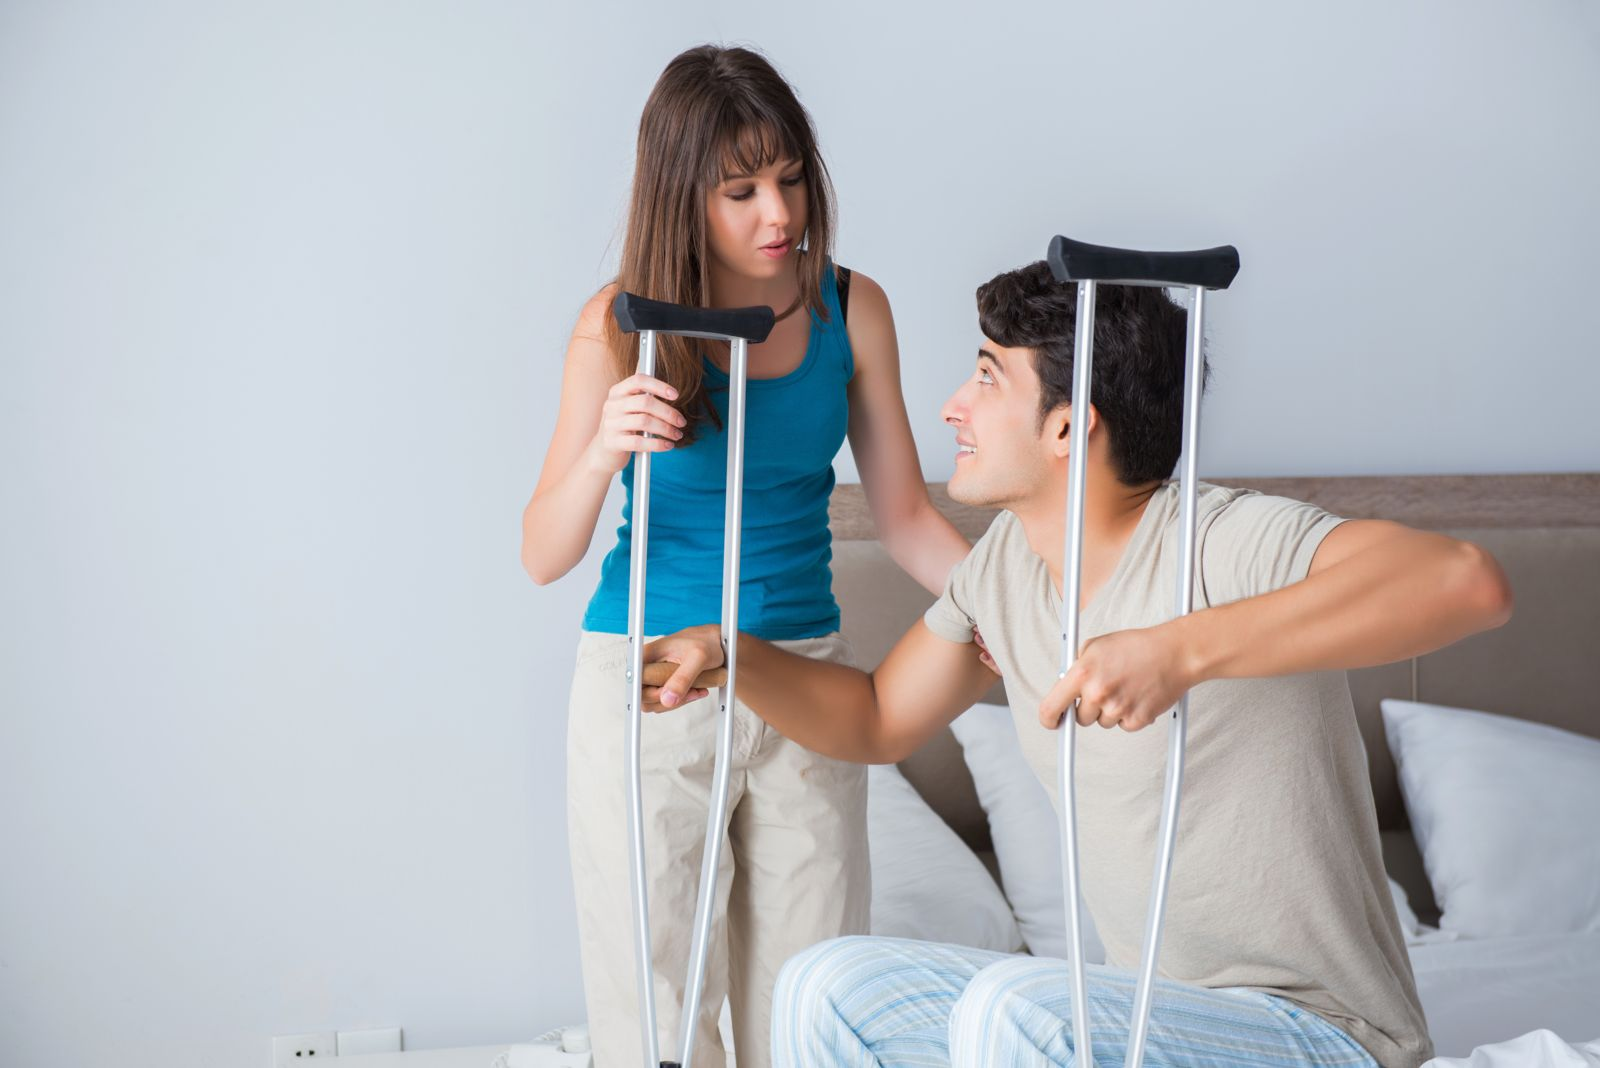 woman helping man with crutches